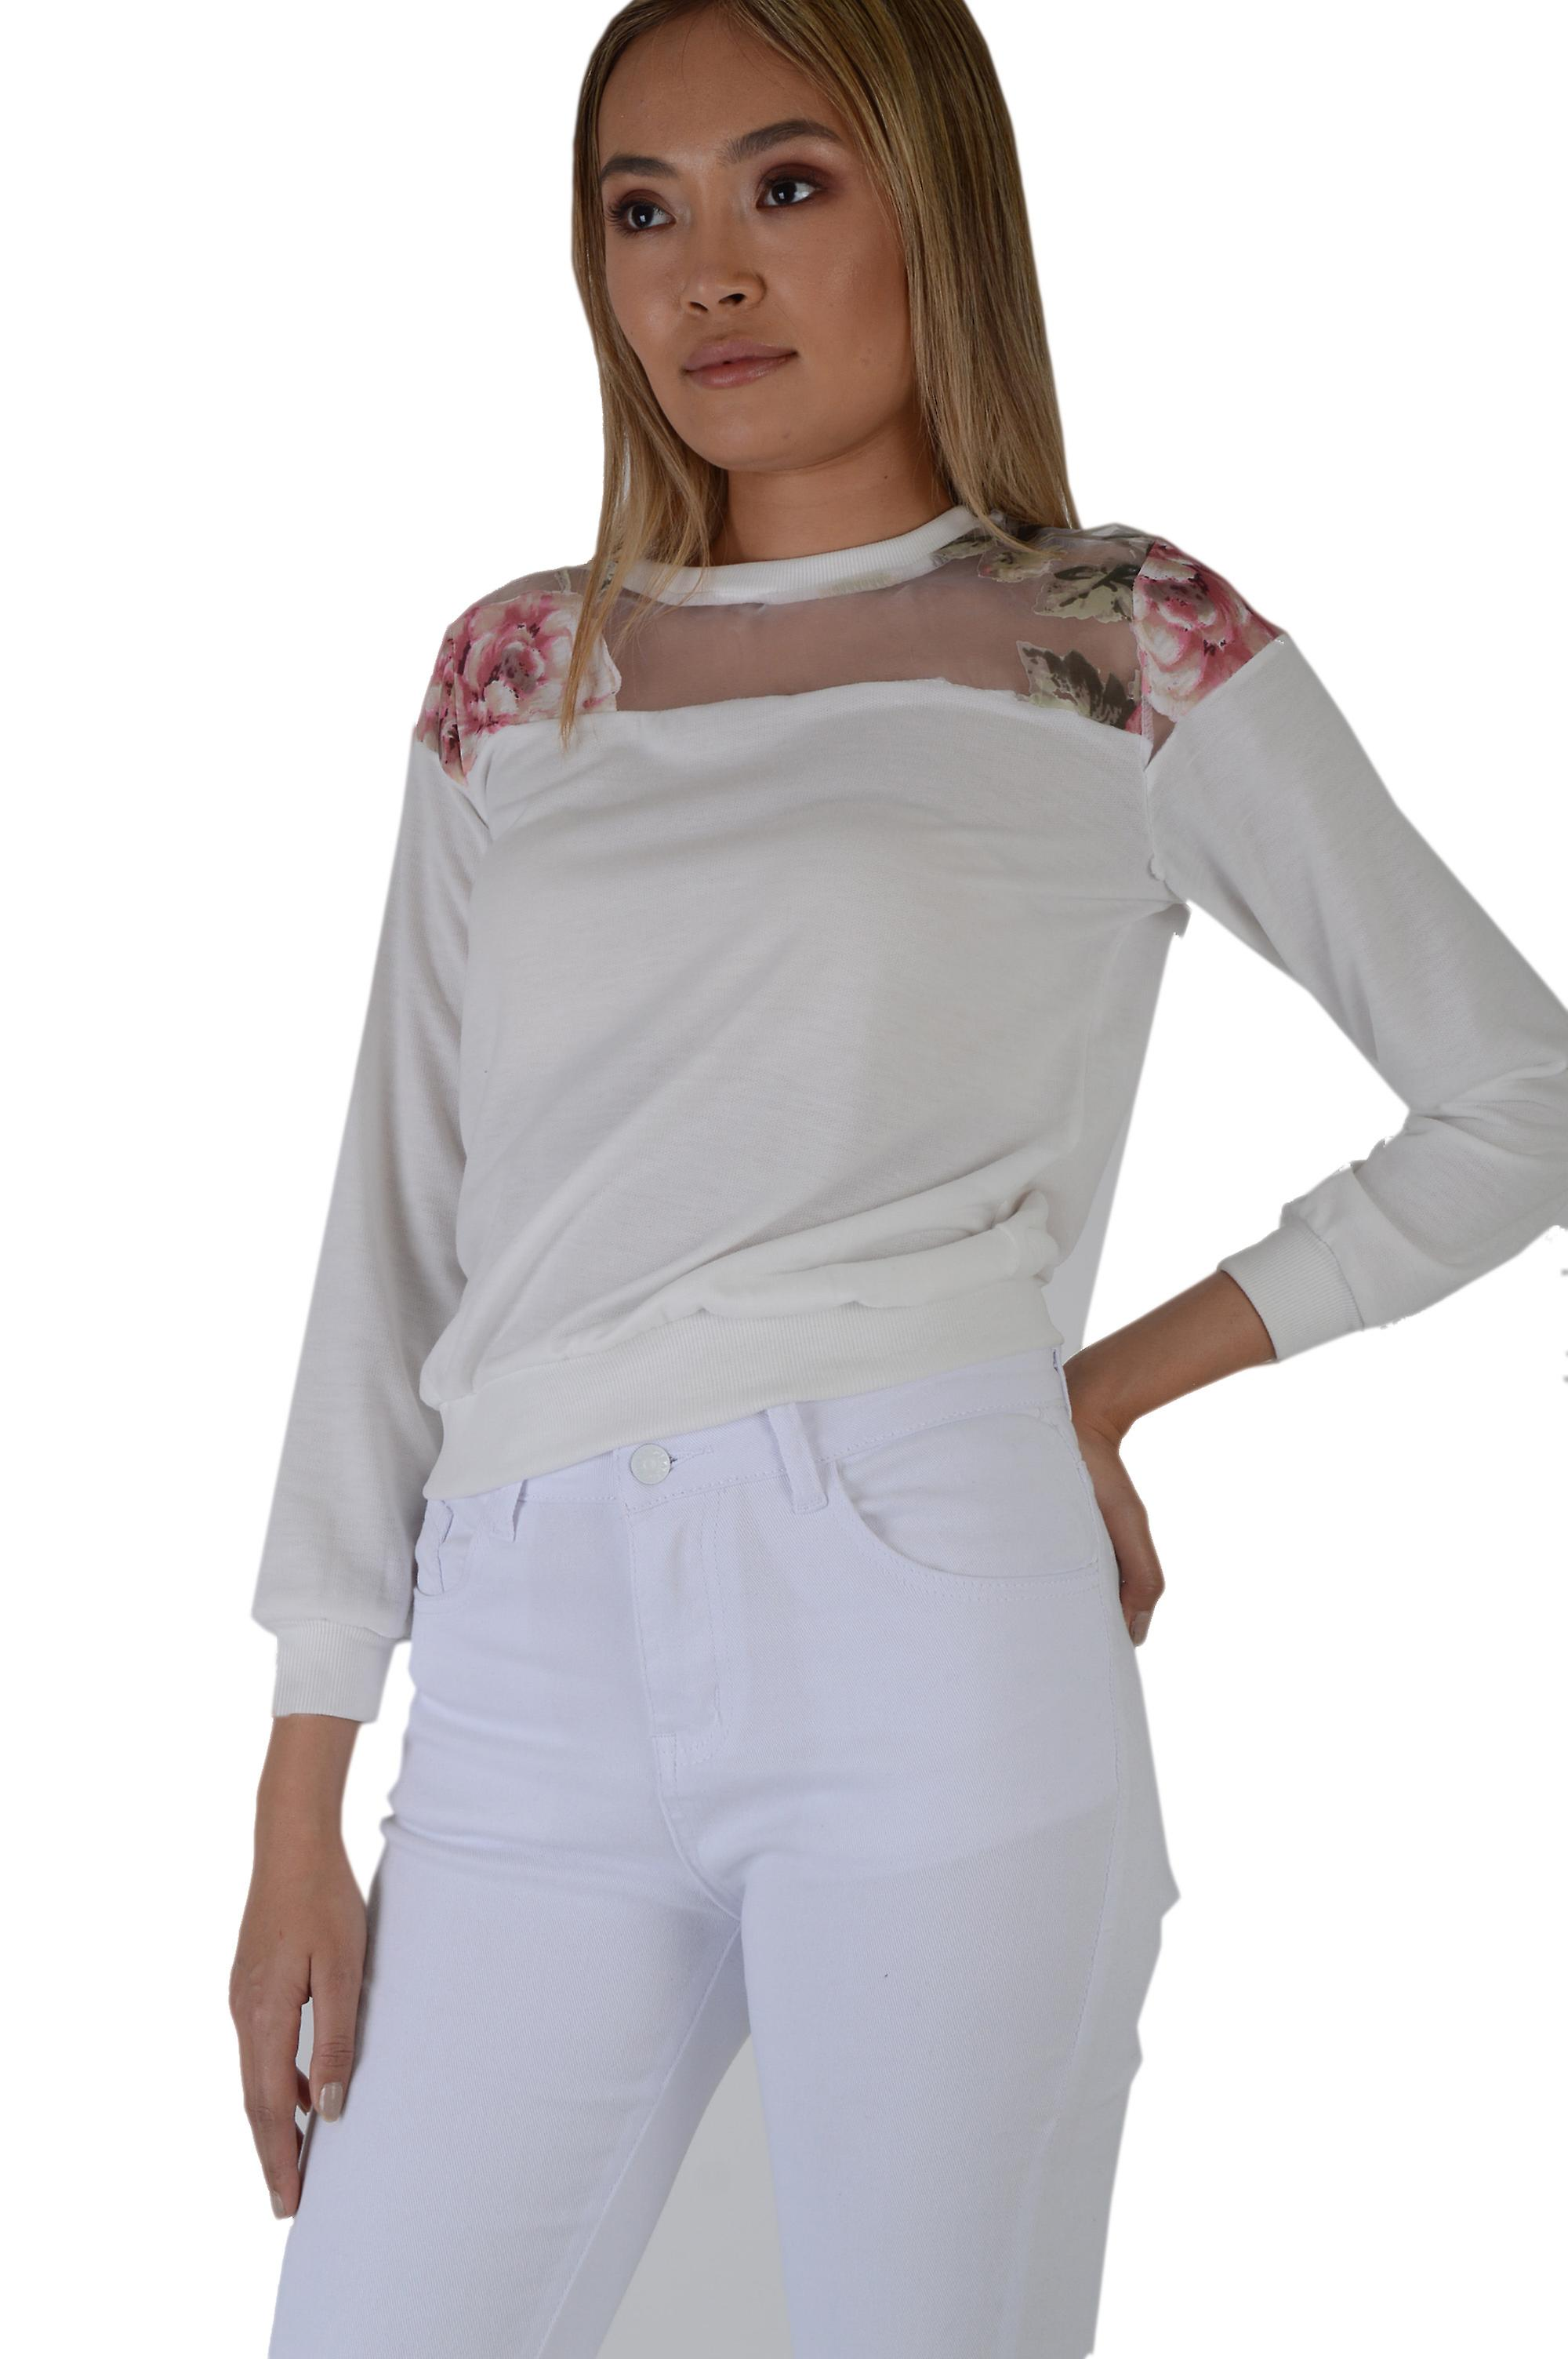 Lovemystyle Cream Fine Knitted Jumper With Floral Mesh Inset - SAMPLE